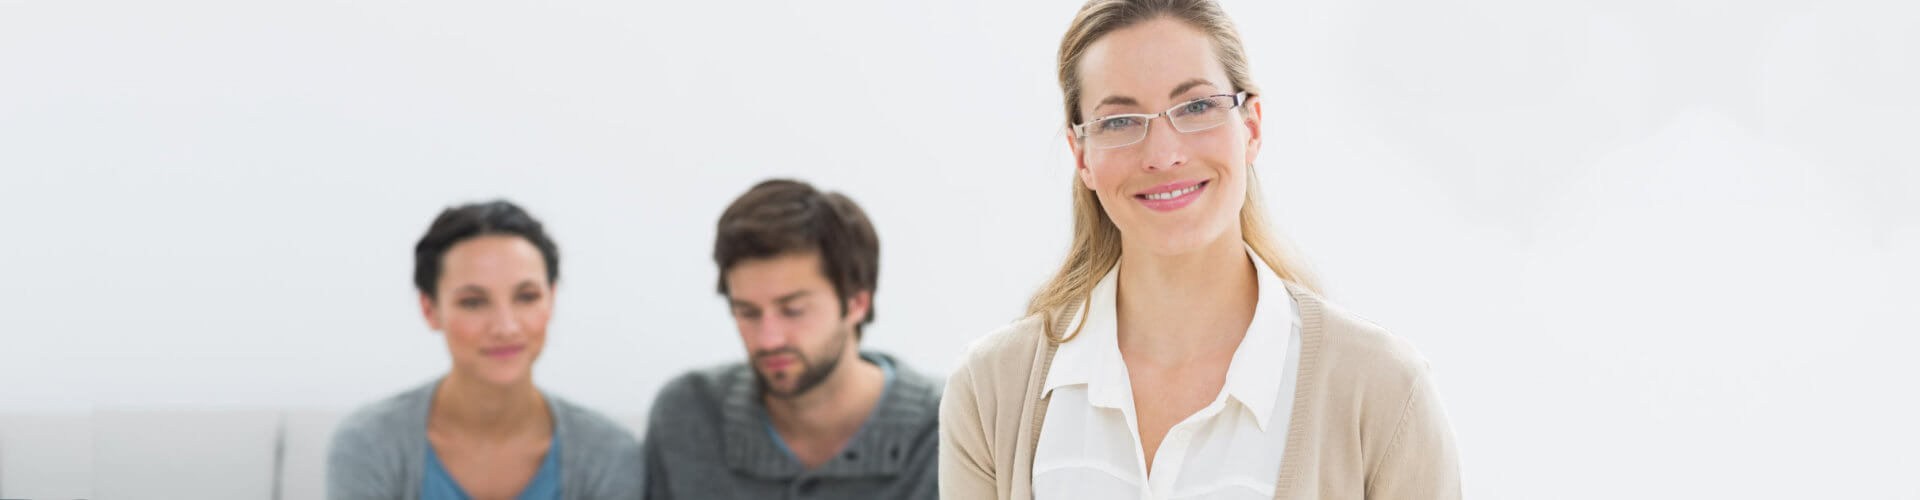 female counselor smiling with the couple at her back